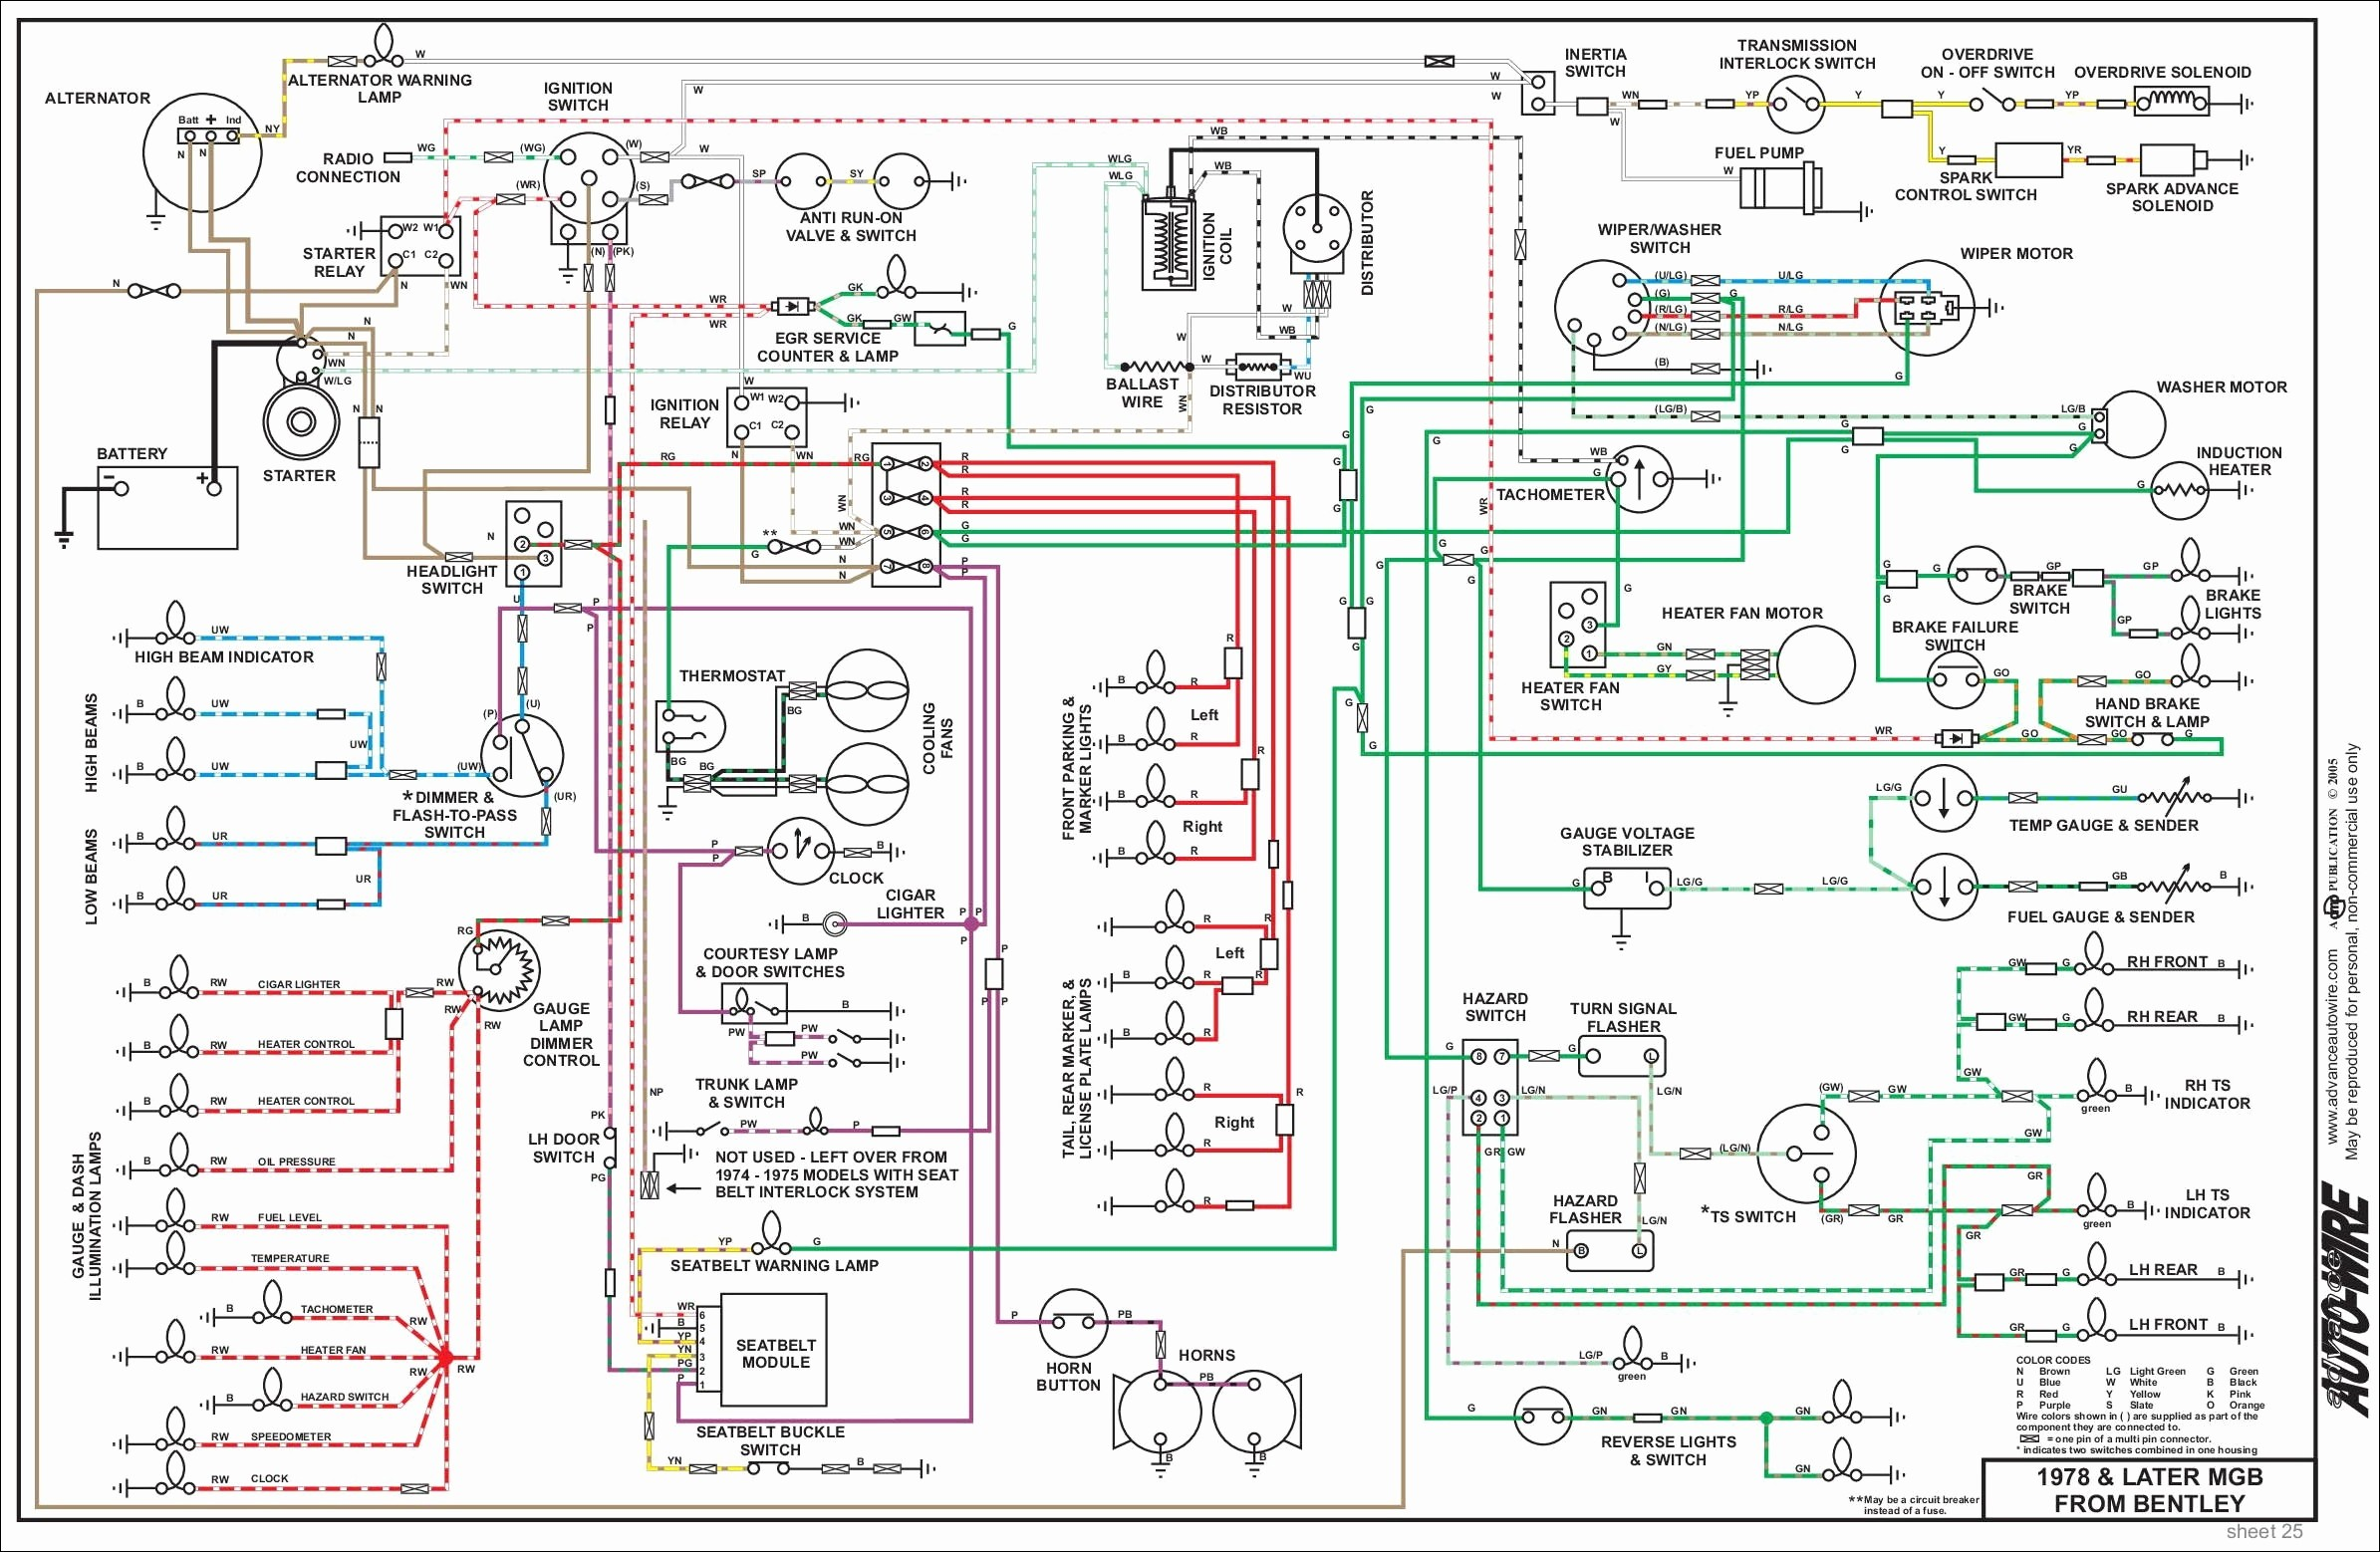 iid wiring diagram wiring schematic diagram motorcycle led wiring diagram iid wiring diagram wiring diagram